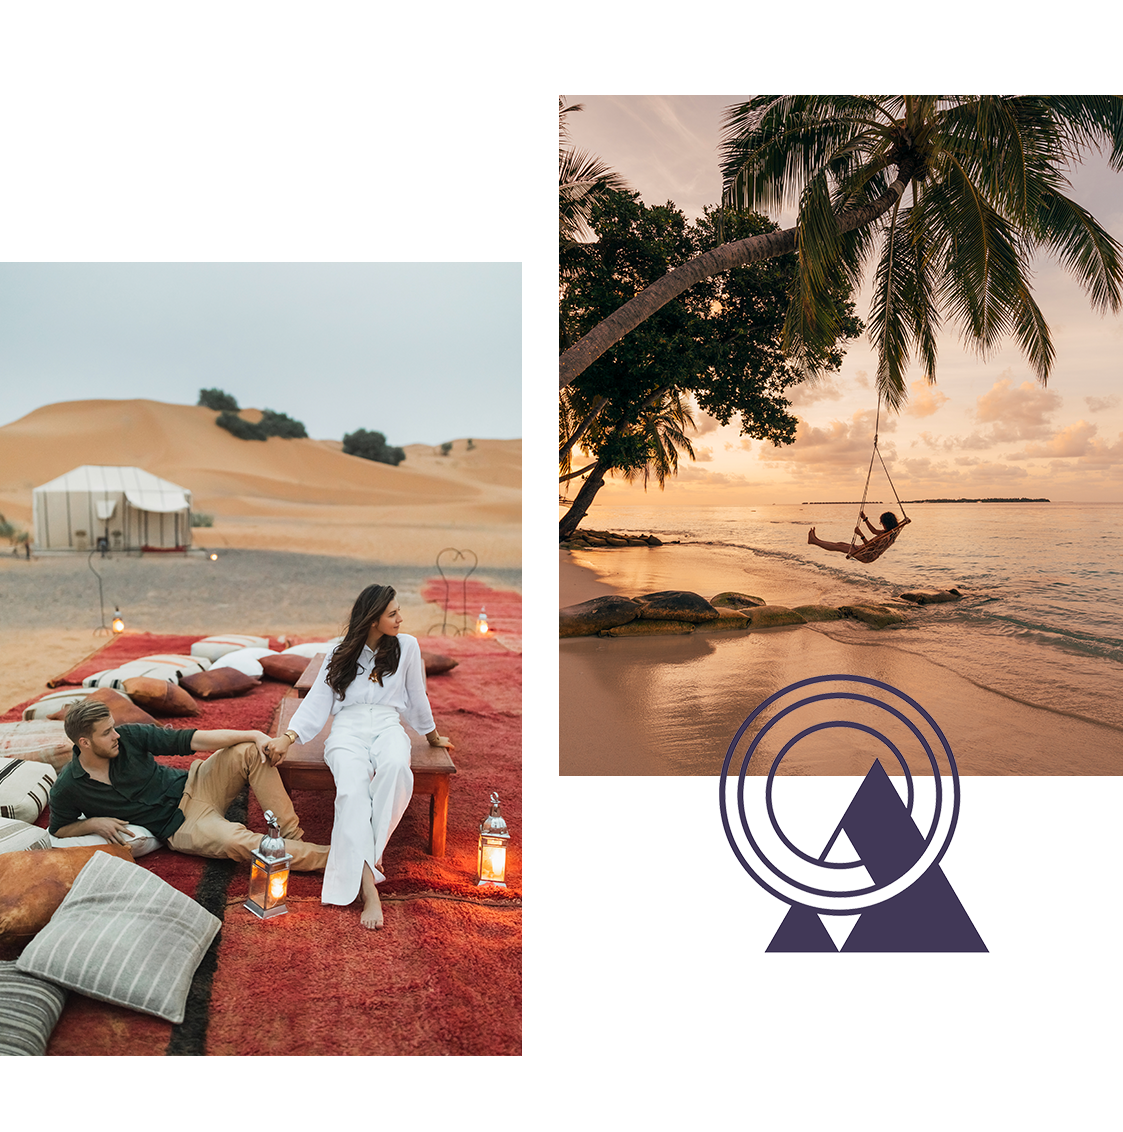 A couple at a luxury saharan resort and a woman on a beach swing at sunset.